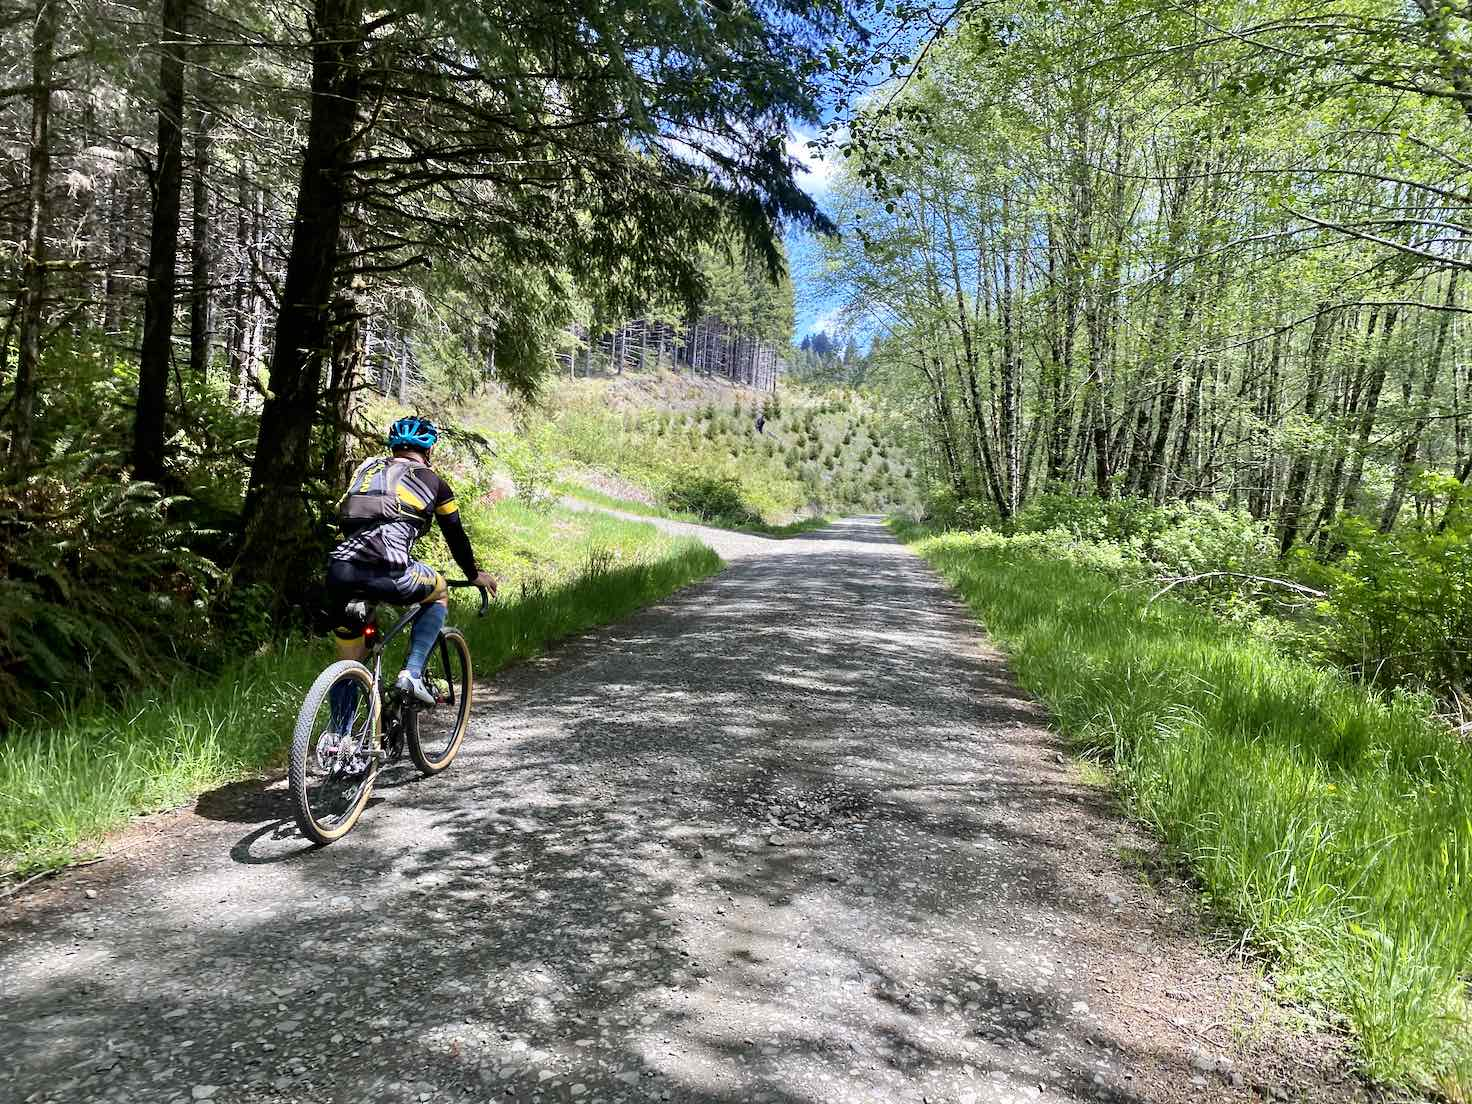 Cyclist on the gravel portion of NF-31 in Oregon.